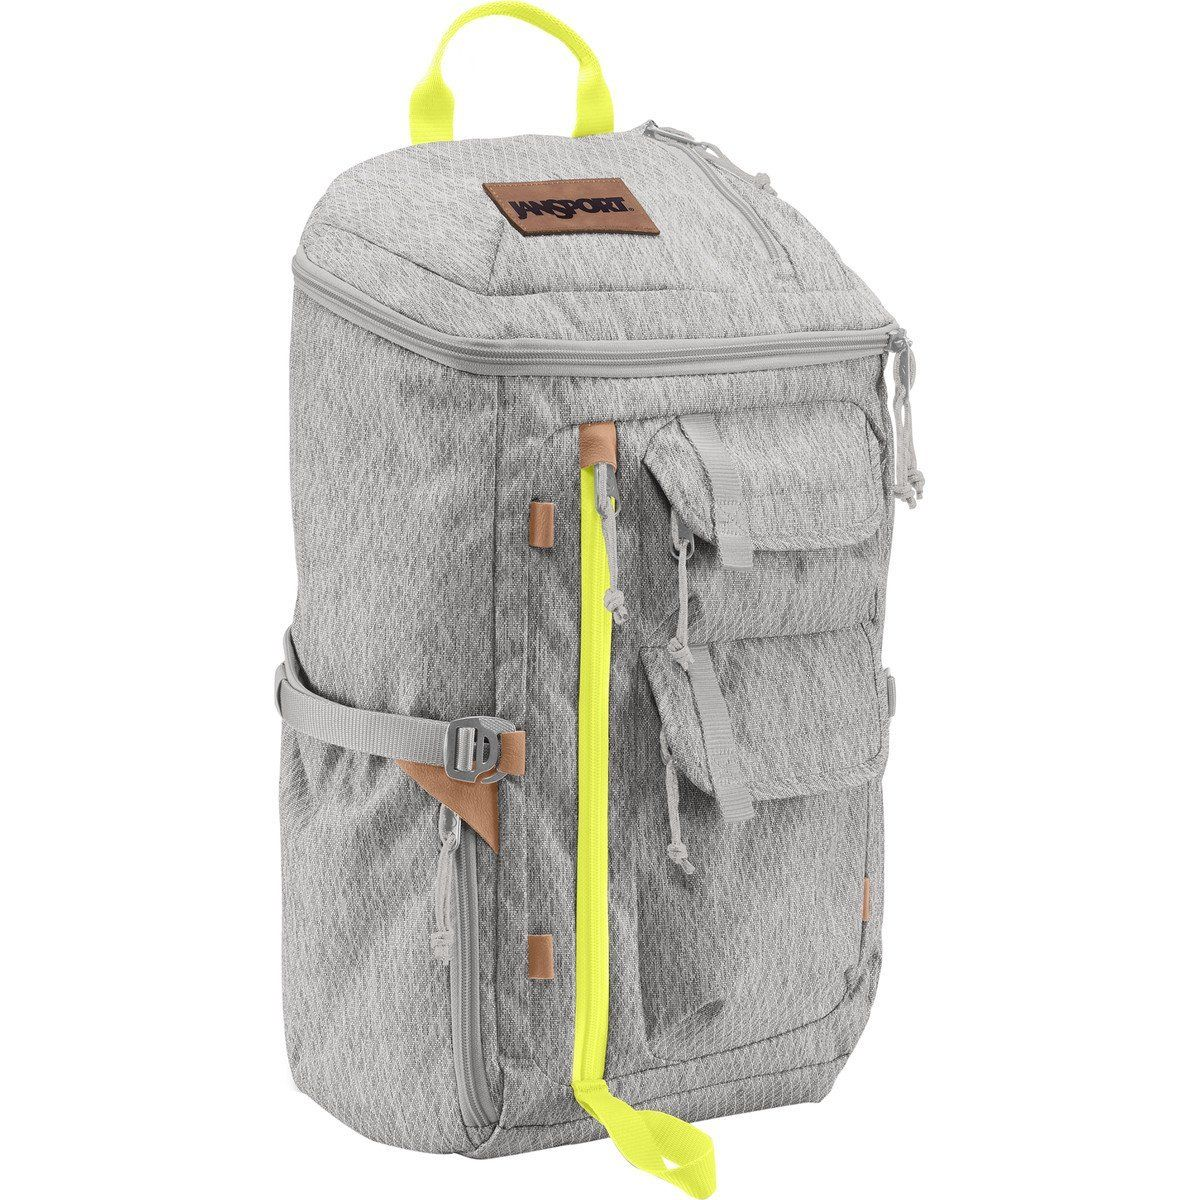 Jansport Watchtower Hiking Backpack >>> A special outdoor item just ...